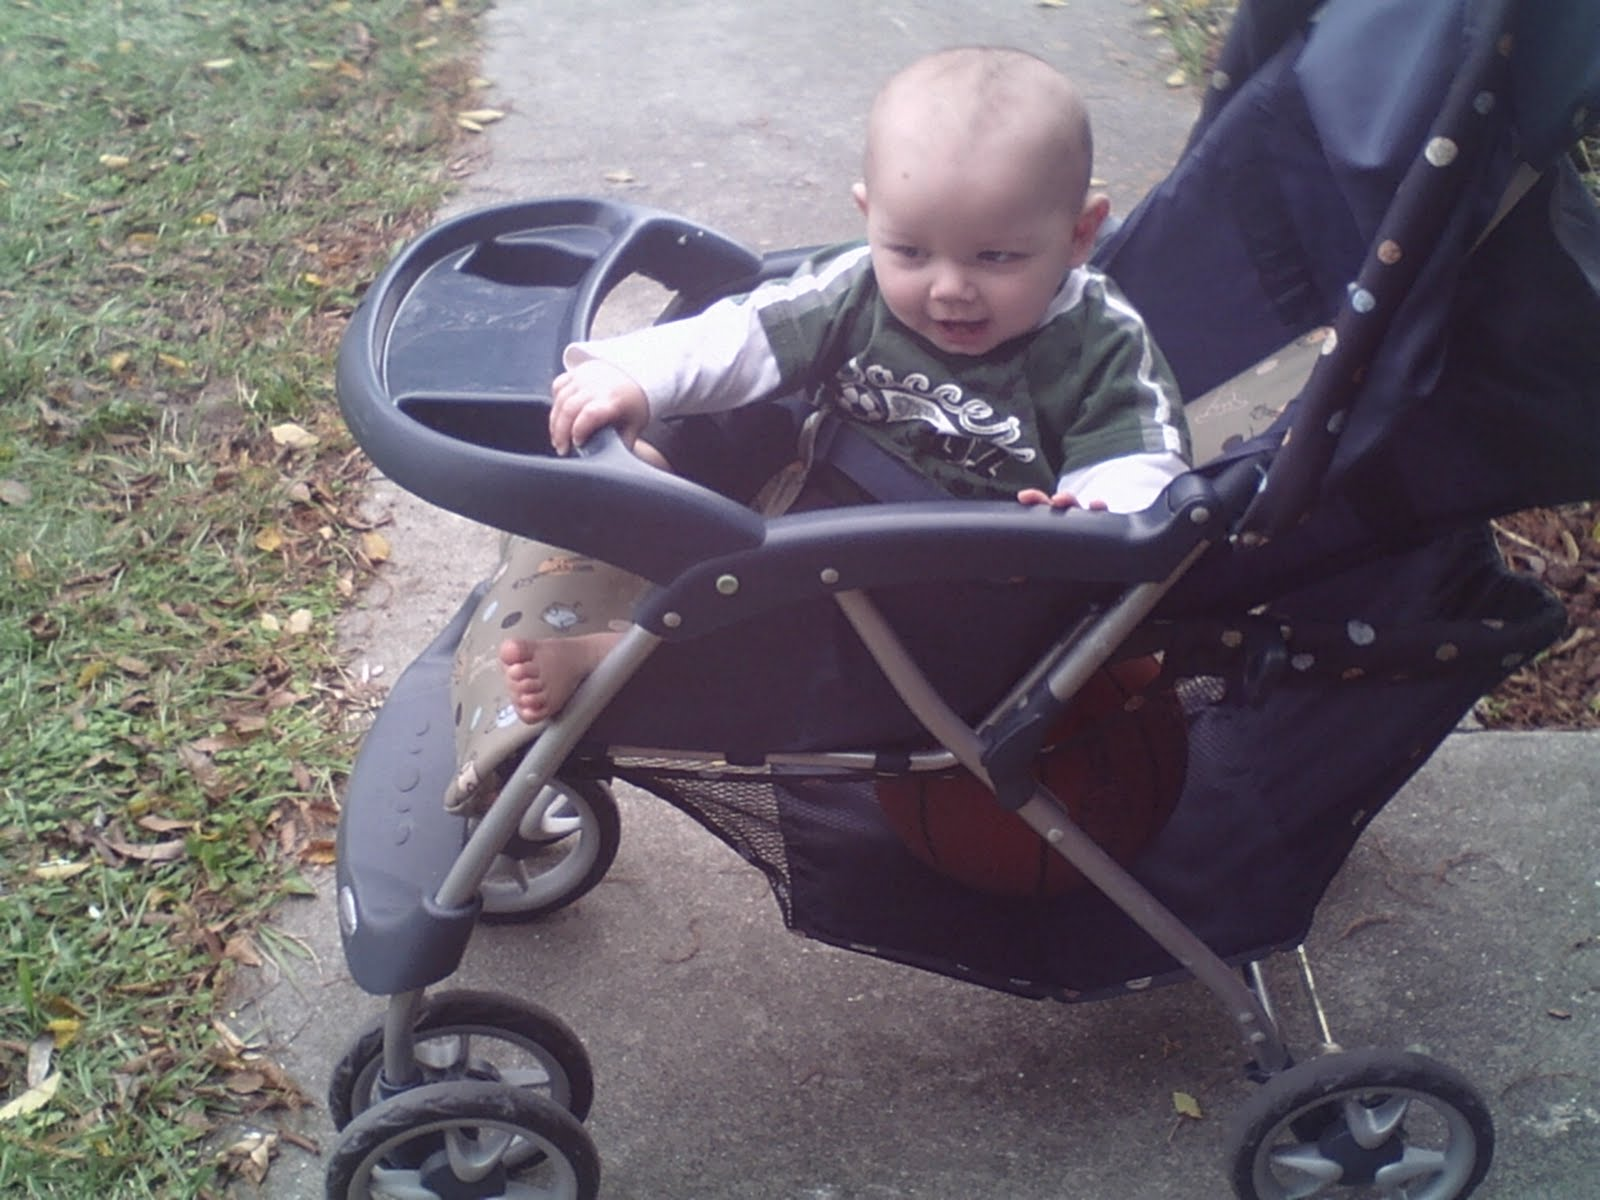 Babies like stroller walks